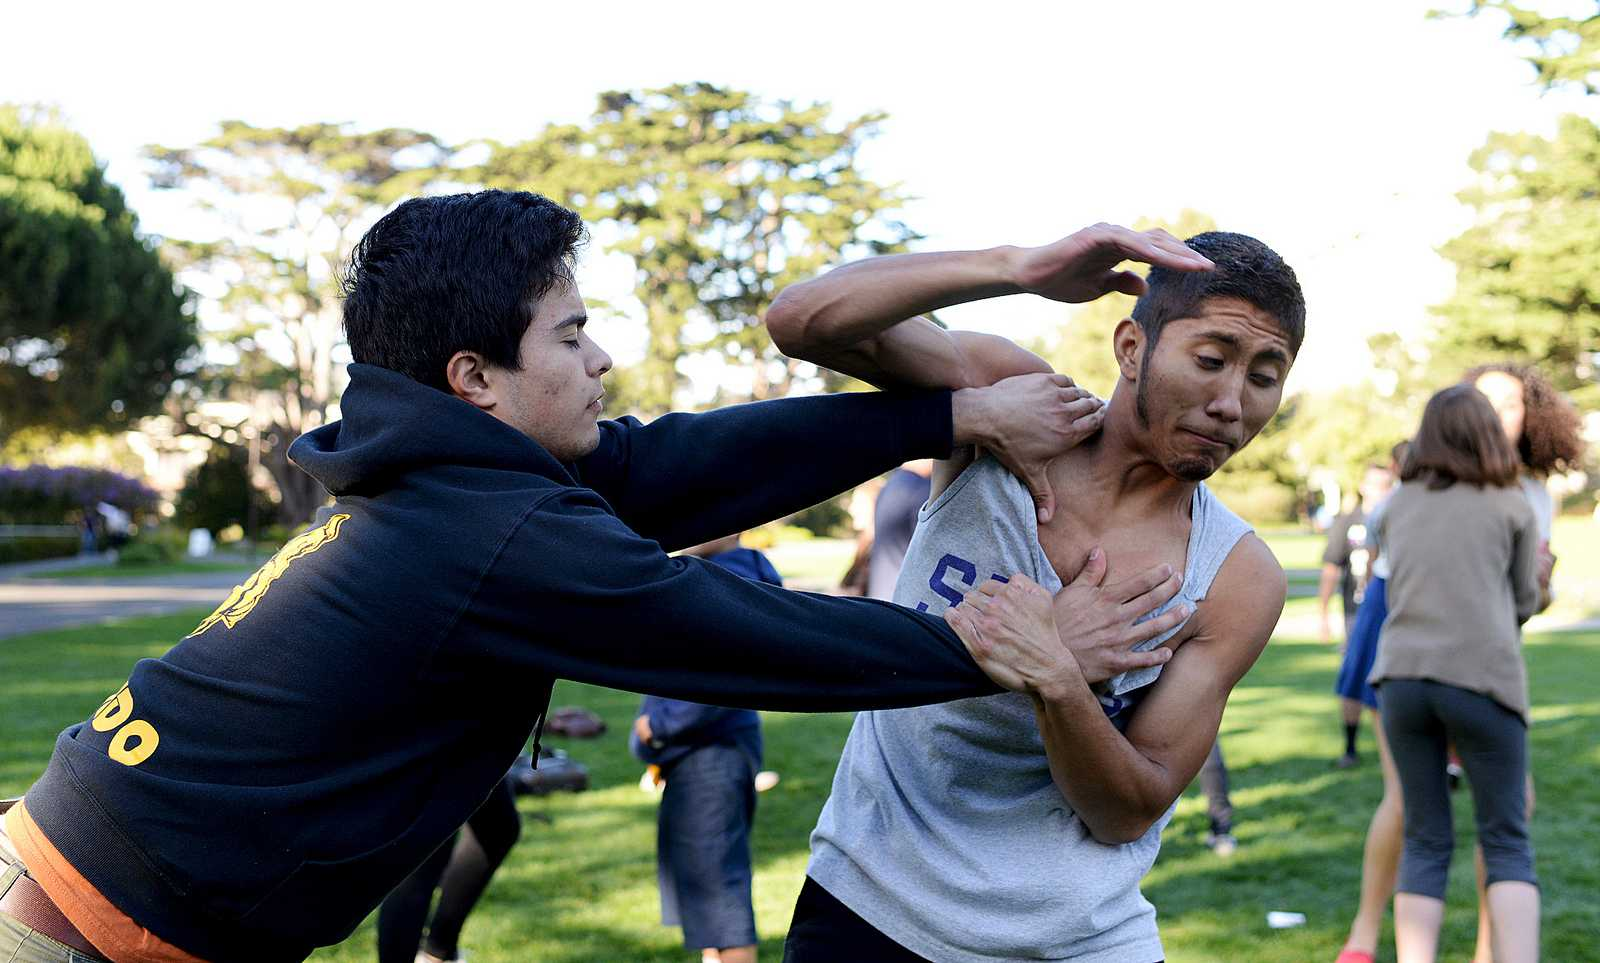 Oscar Hernandez (left) practices Krav Maga moves with Micky Mejia (right) during a Women's Center sponsered event where self defense was taught to participants in the Quad at SF State on Thursday, Nov. 7, 2013. Photo by Virginia Tieman / Xpress